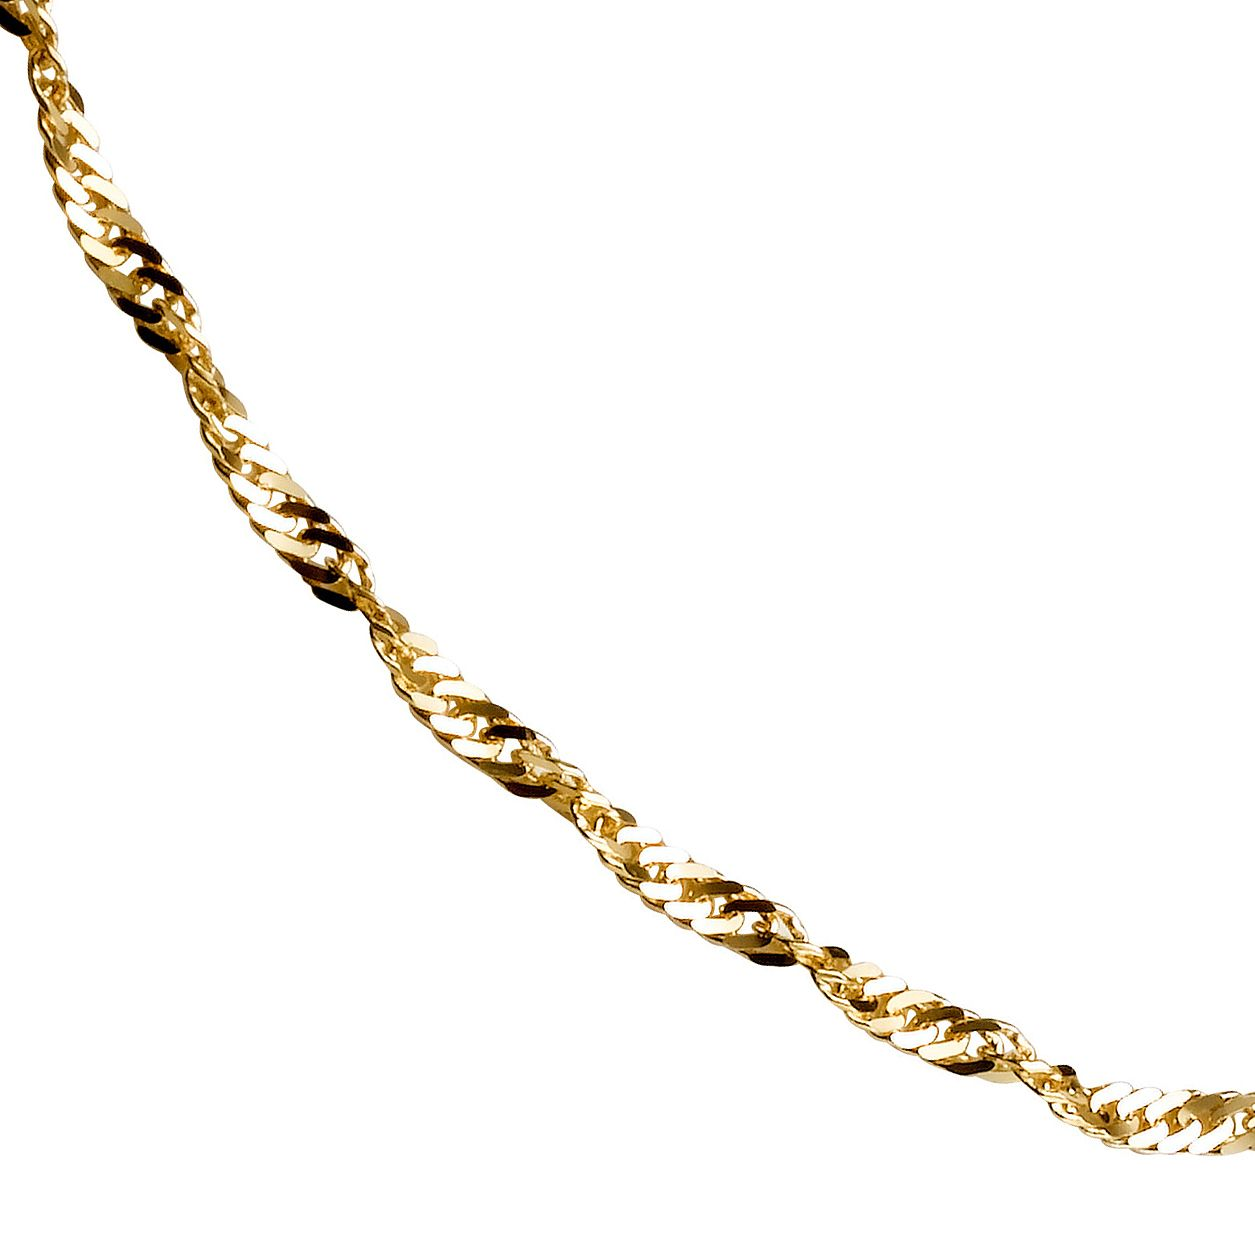 9ct Gold Twist Curb Chain Necklace - Product number 4271777